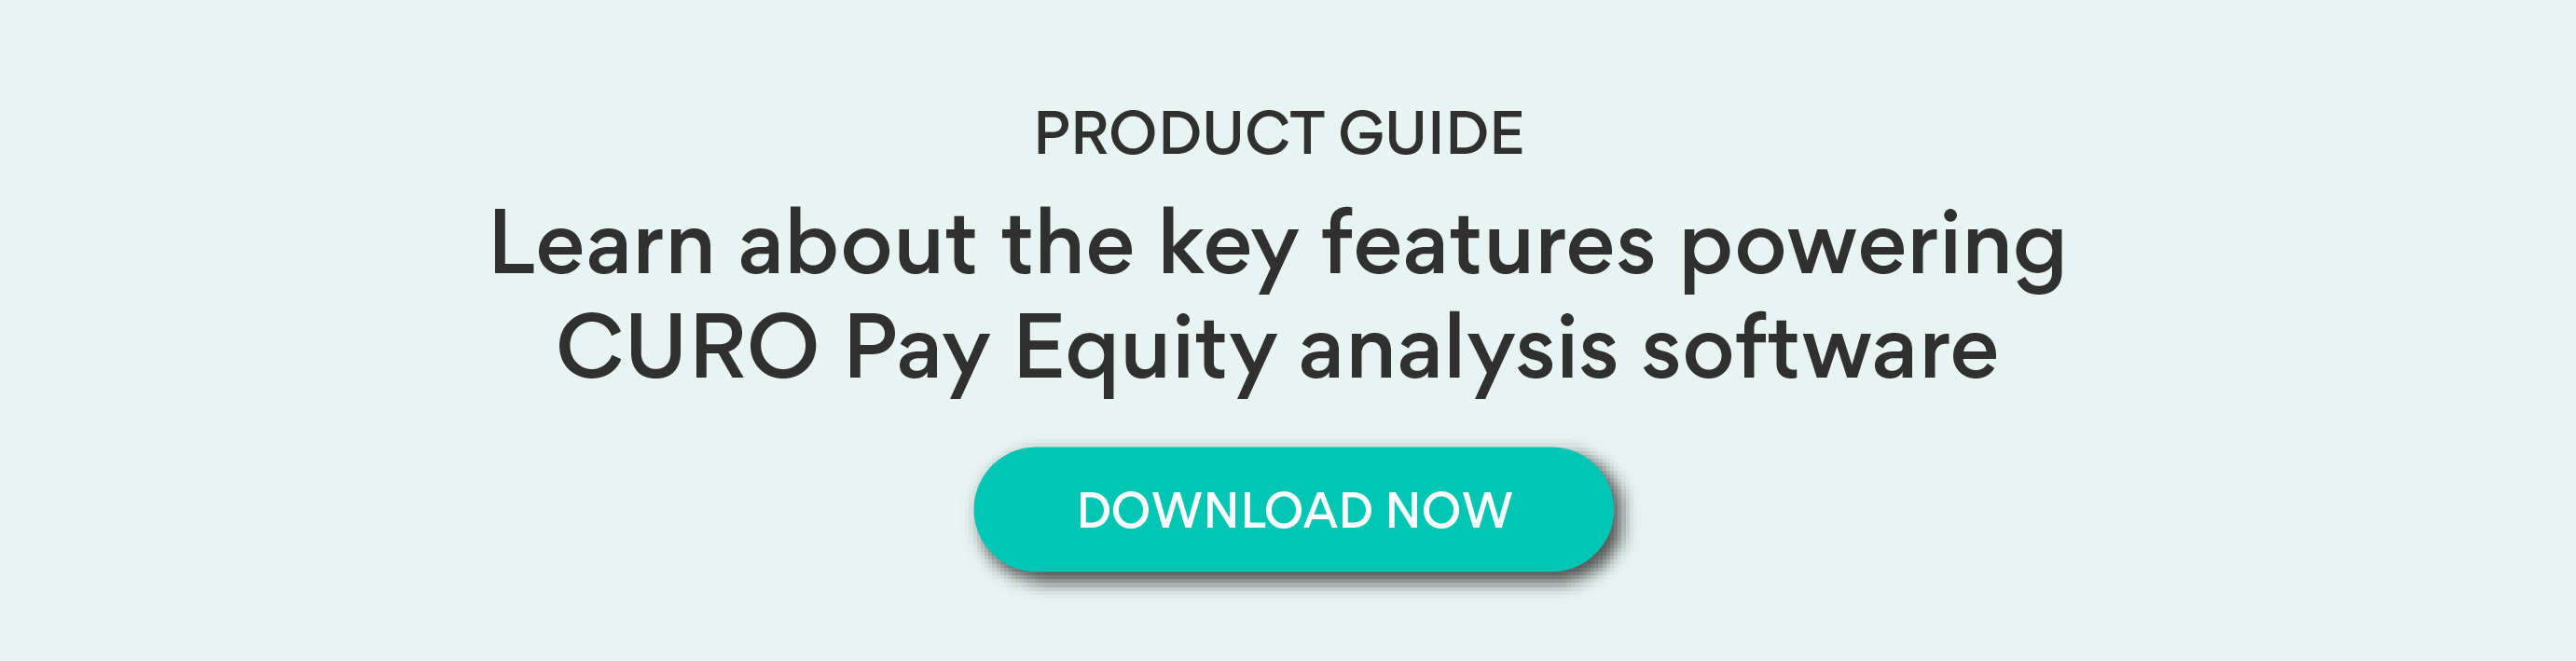 download the curo pay equity analysis product guide